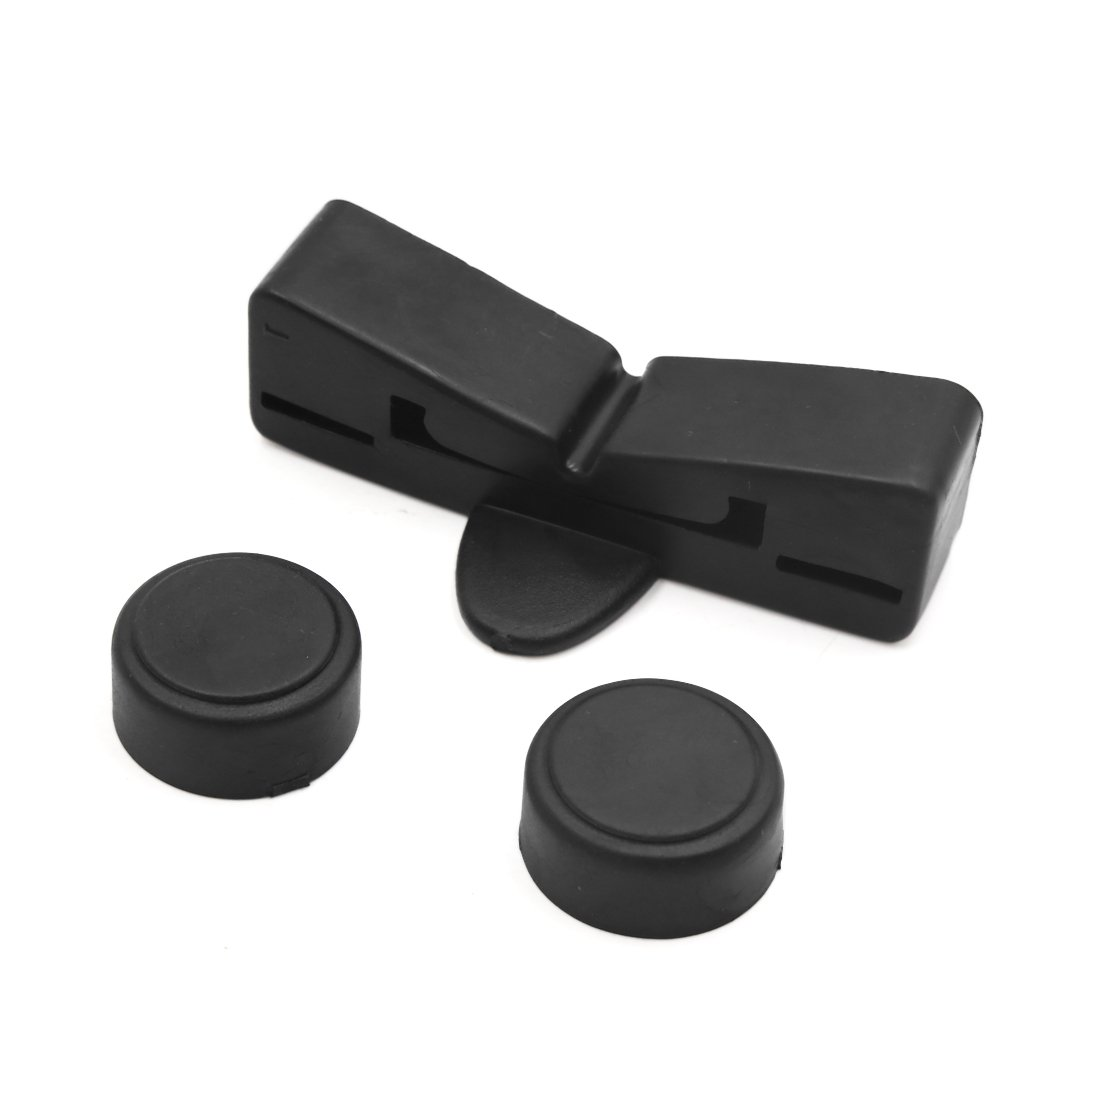 Sourcingmap Black Rubber Motorcycle Scooter Gas Oil Fuel Tank Cushion Holder Set for CG125 a18041100ux0159